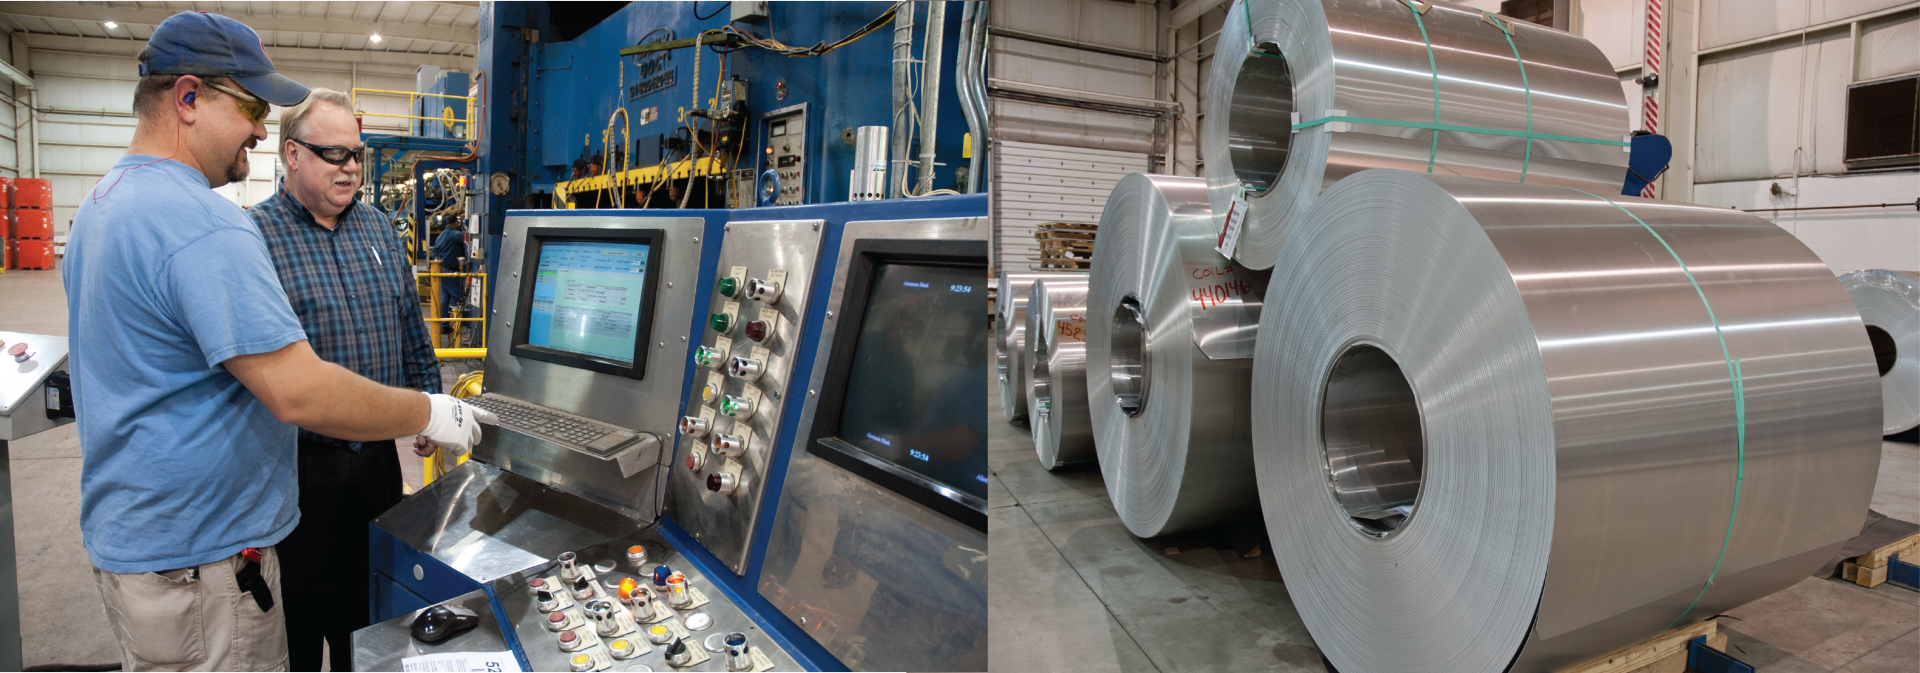 Three photos showing different aspects of manufacturing